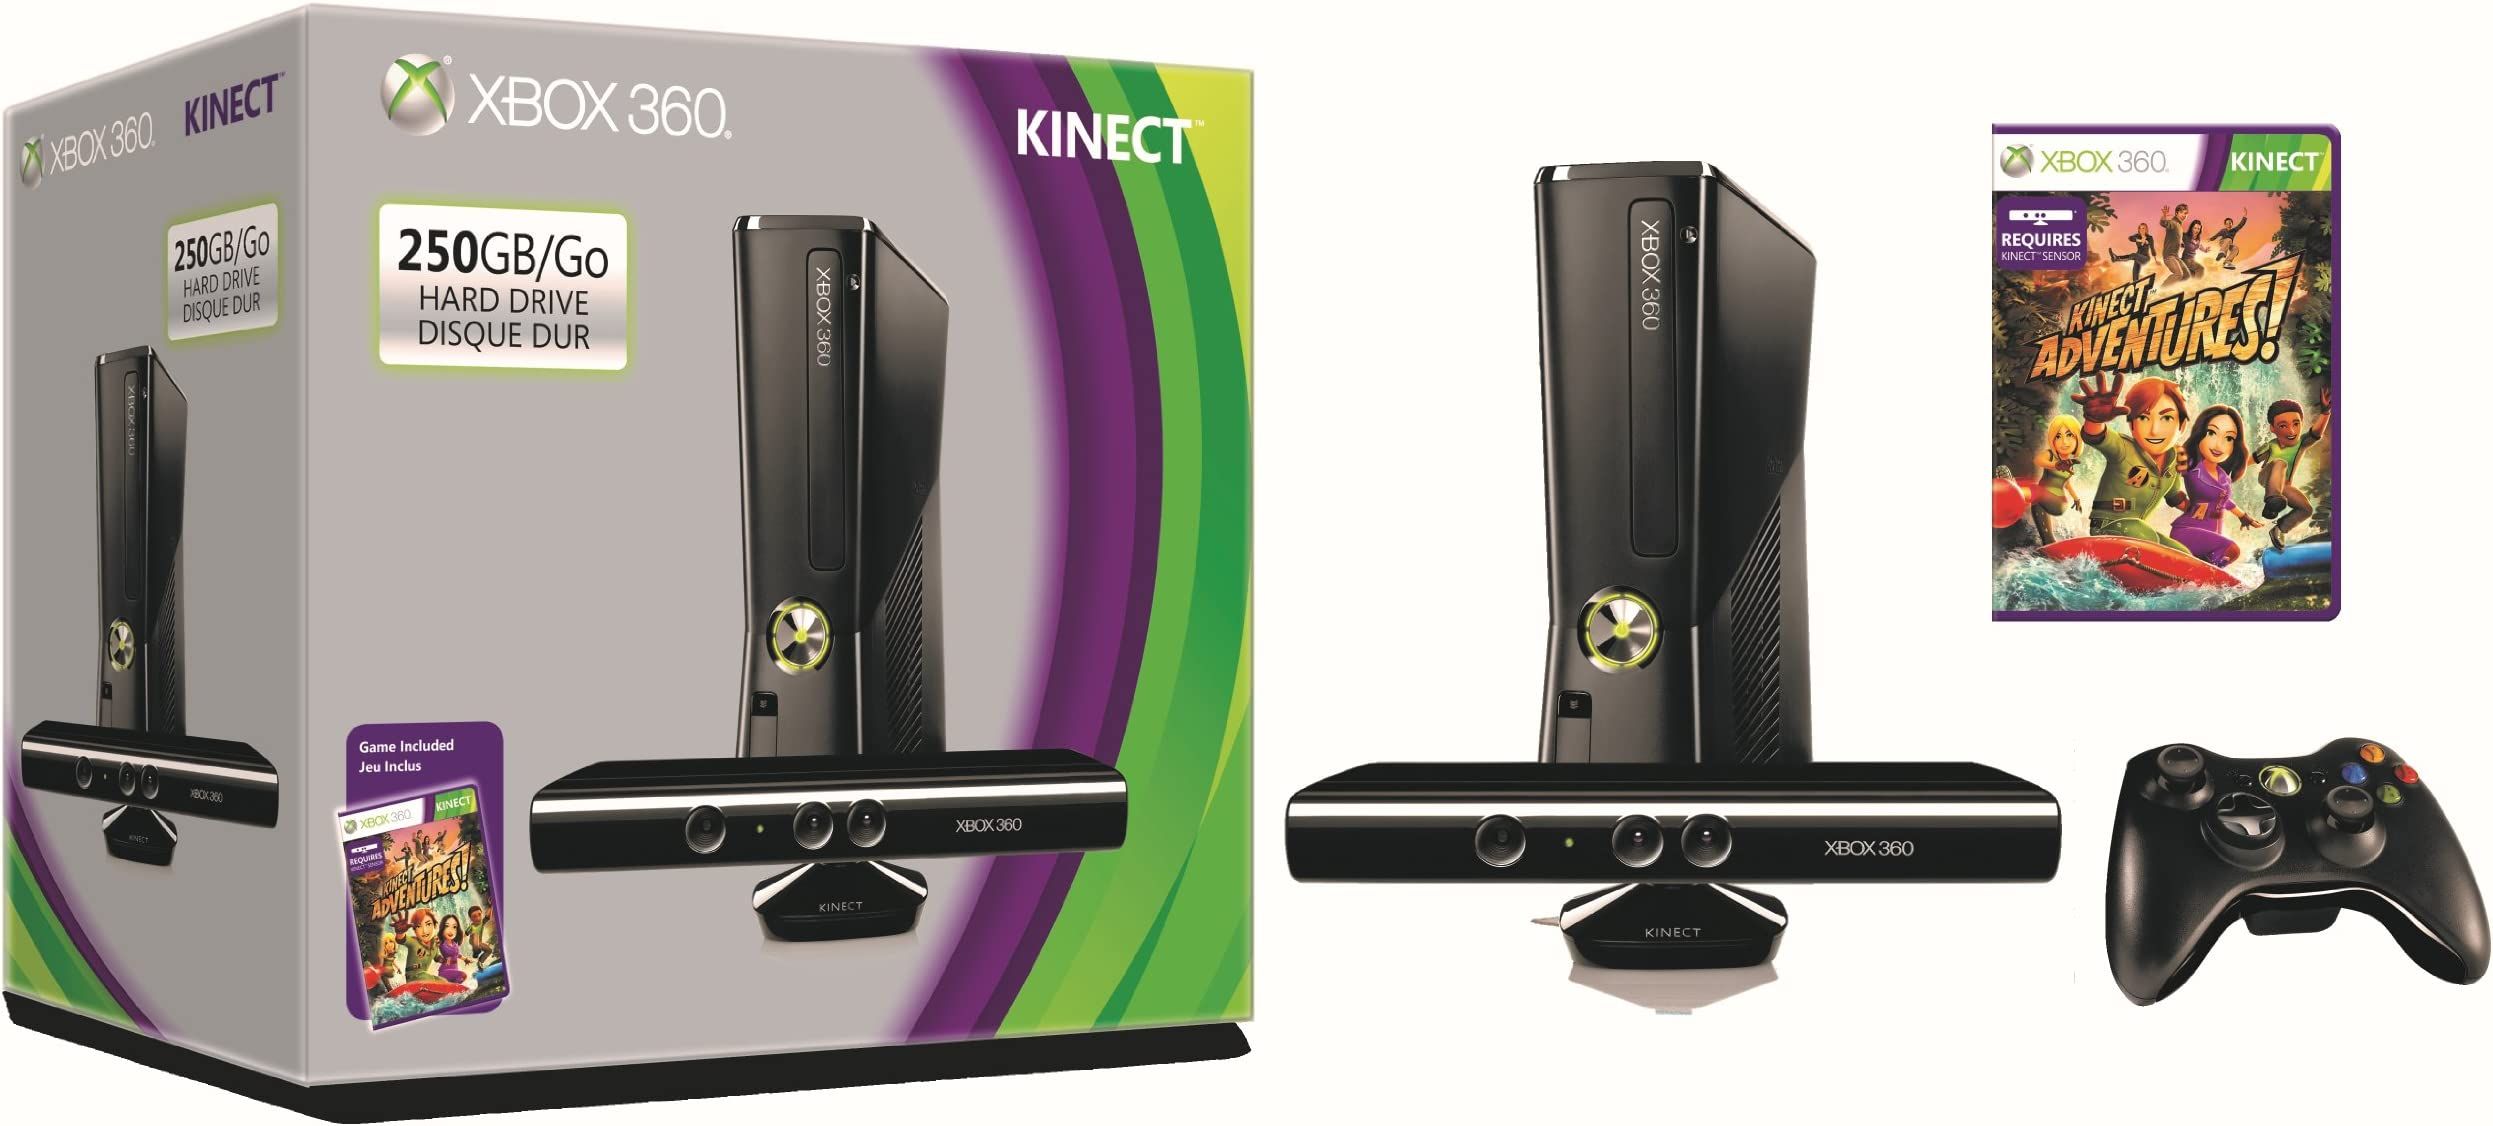 e58fef448e2b Amazon.com  Microsoft Xbox 360 S 250GB System Kinect Bundle  Video Games